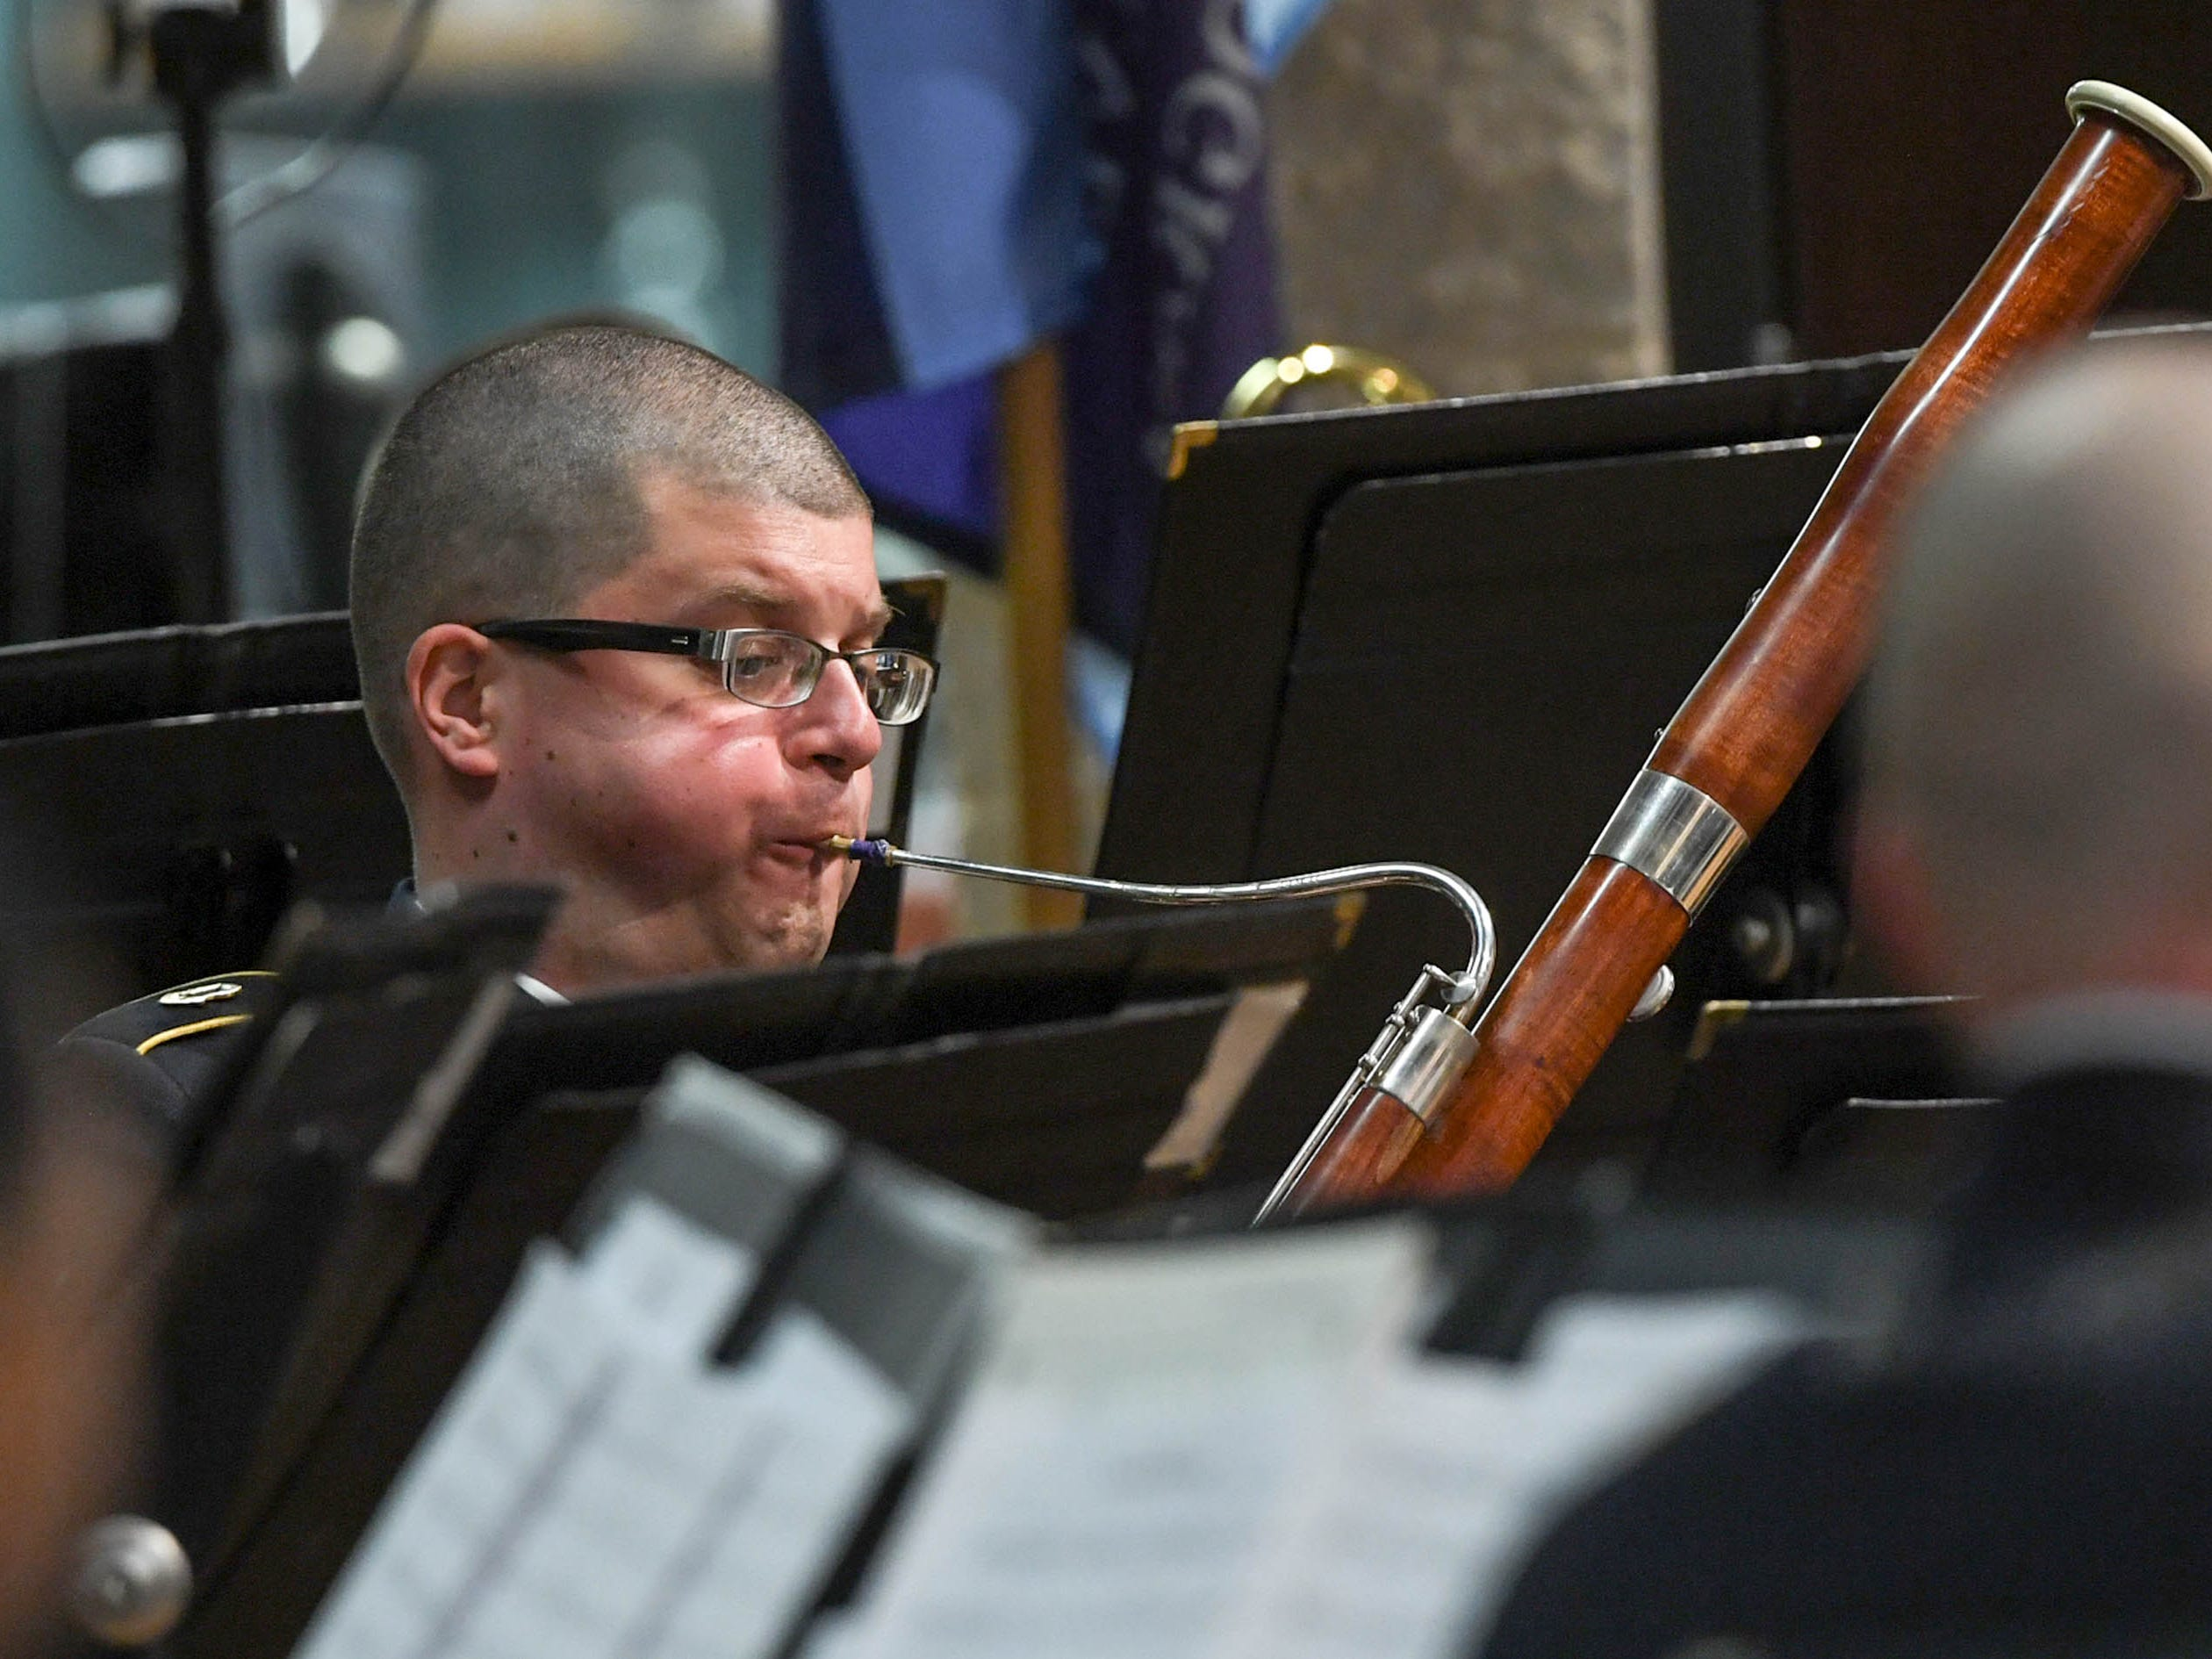 SGT Martin Van Klompenberg of the 282d U.S. Army Band plays bassoon during a free concert at T.L. Hanna High School in Anderson Thursday, March 7.